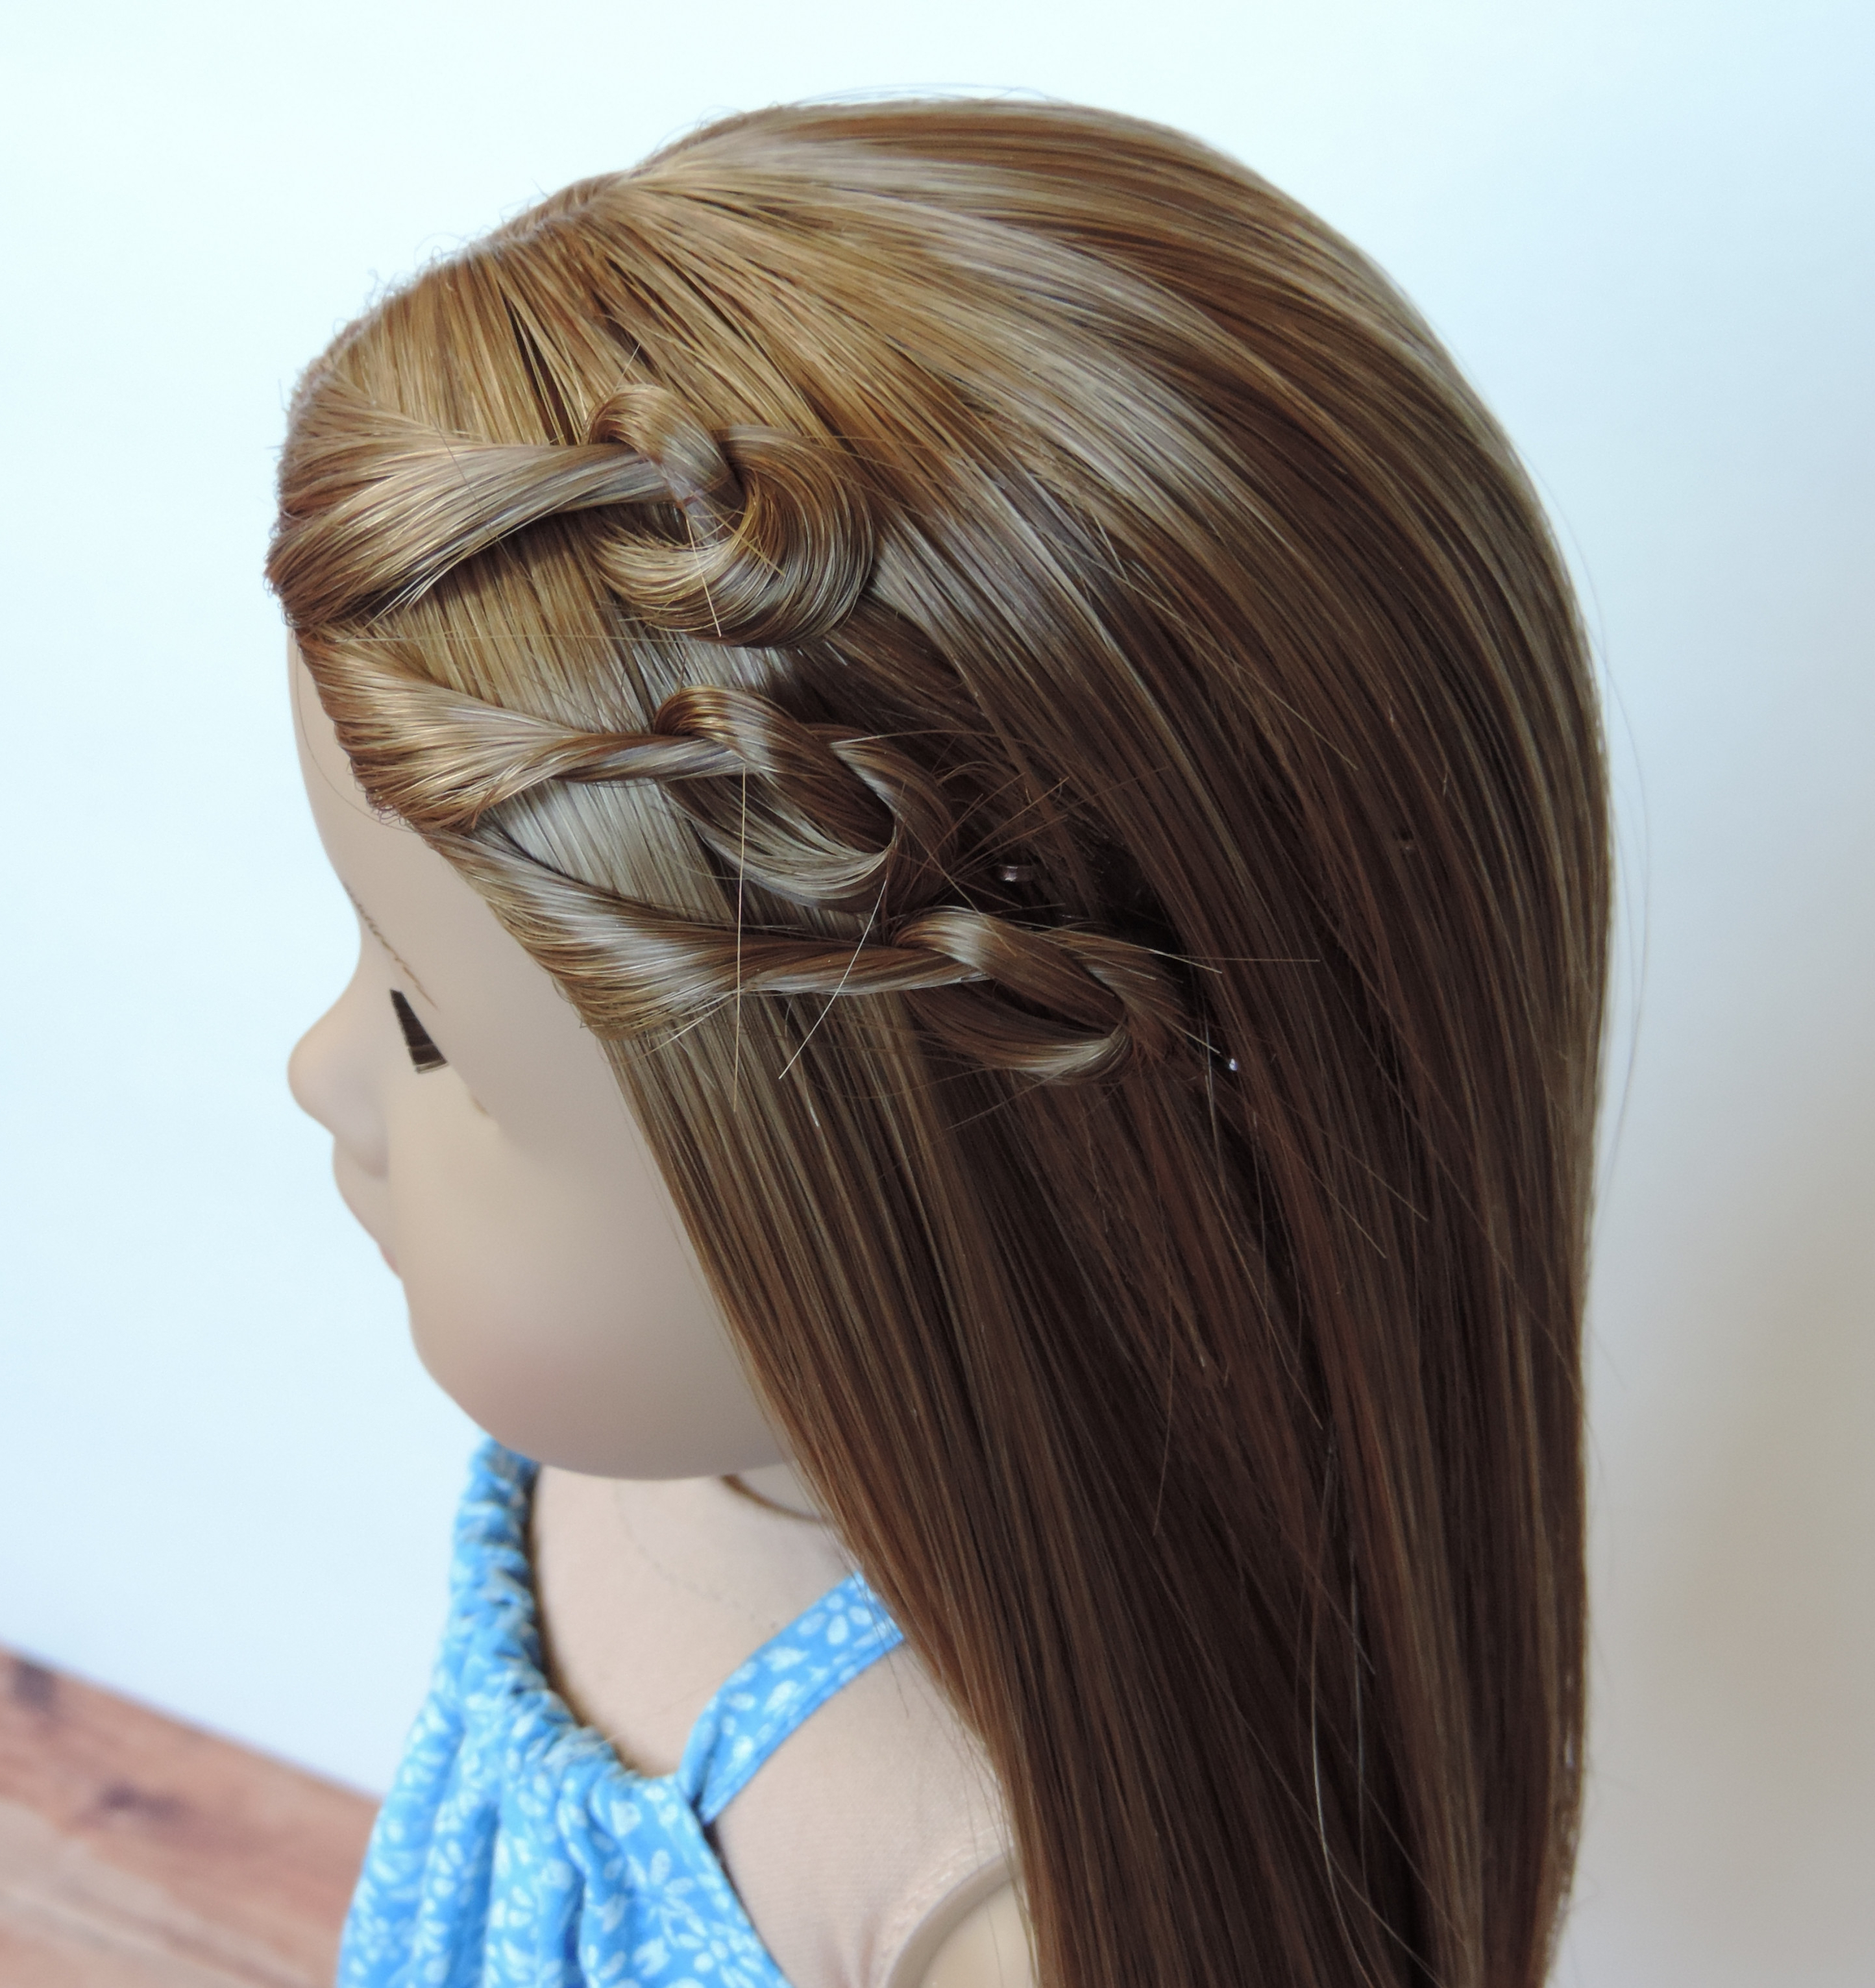 Easy American Girl Doll Hairstyles   Latest Hairstyles And Haircuts For Hairstyles For American Girl Dolls With Short Hair (View 21 of 25)